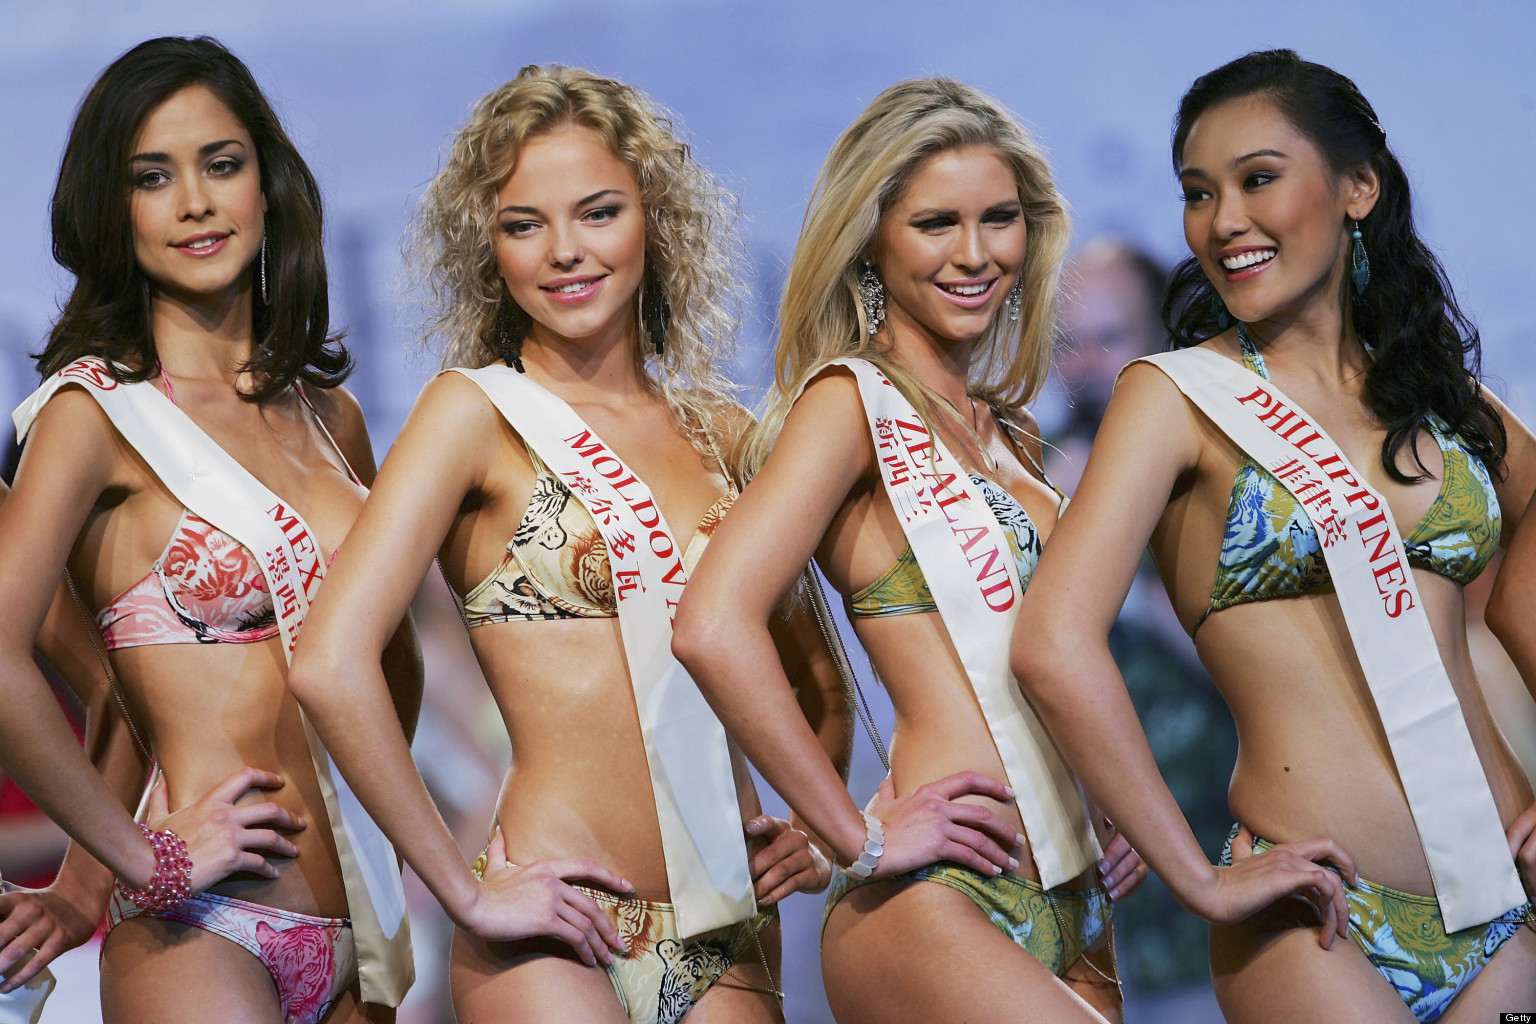 Remarkable, very Ms bikini world contest does not